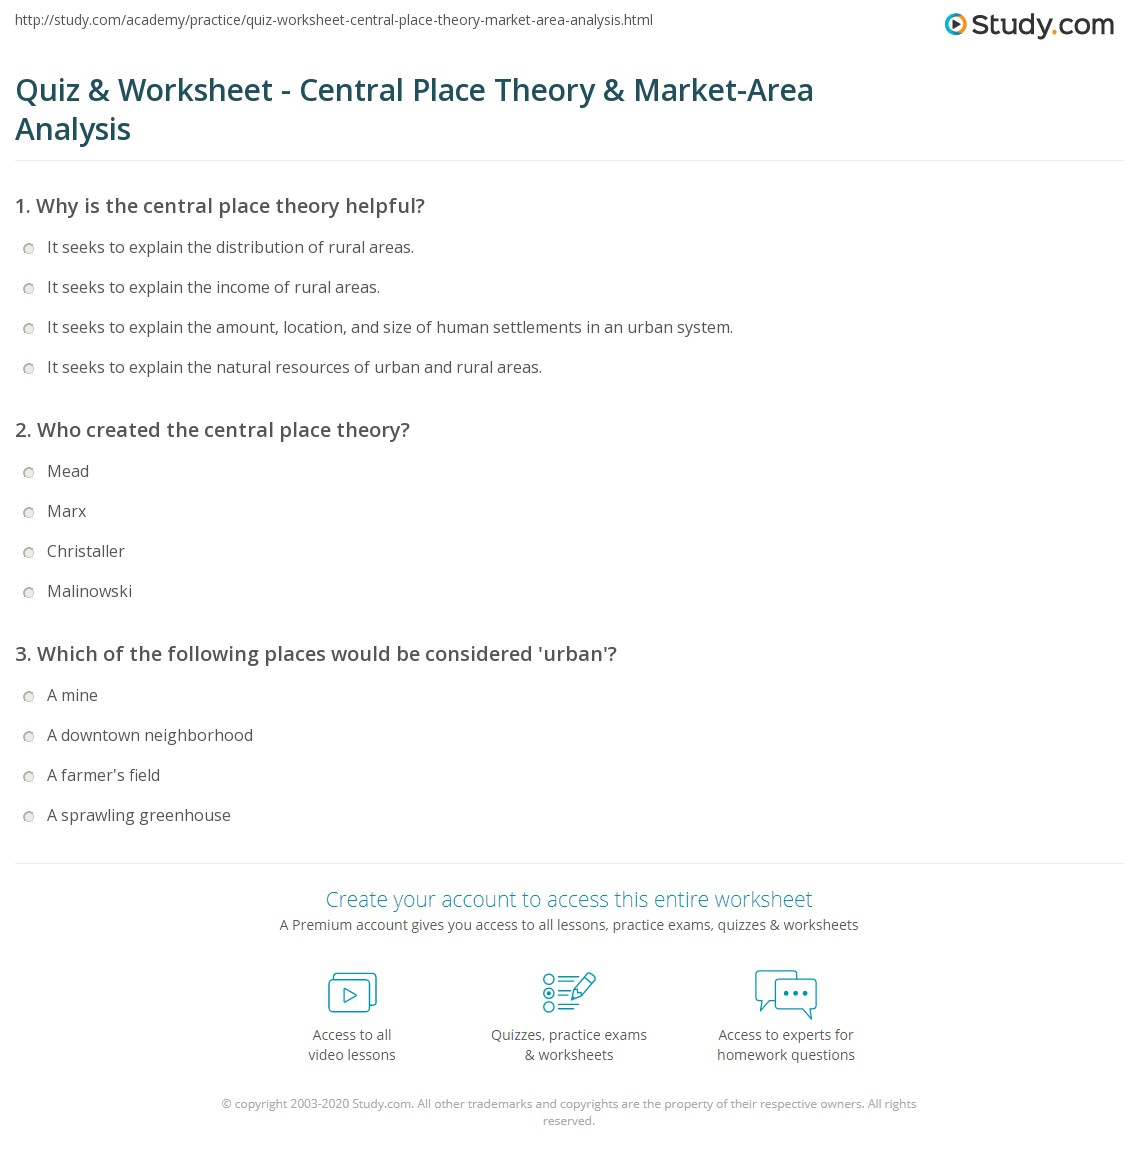 quiz worksheet central place theory market area analysis. Black Bedroom Furniture Sets. Home Design Ideas